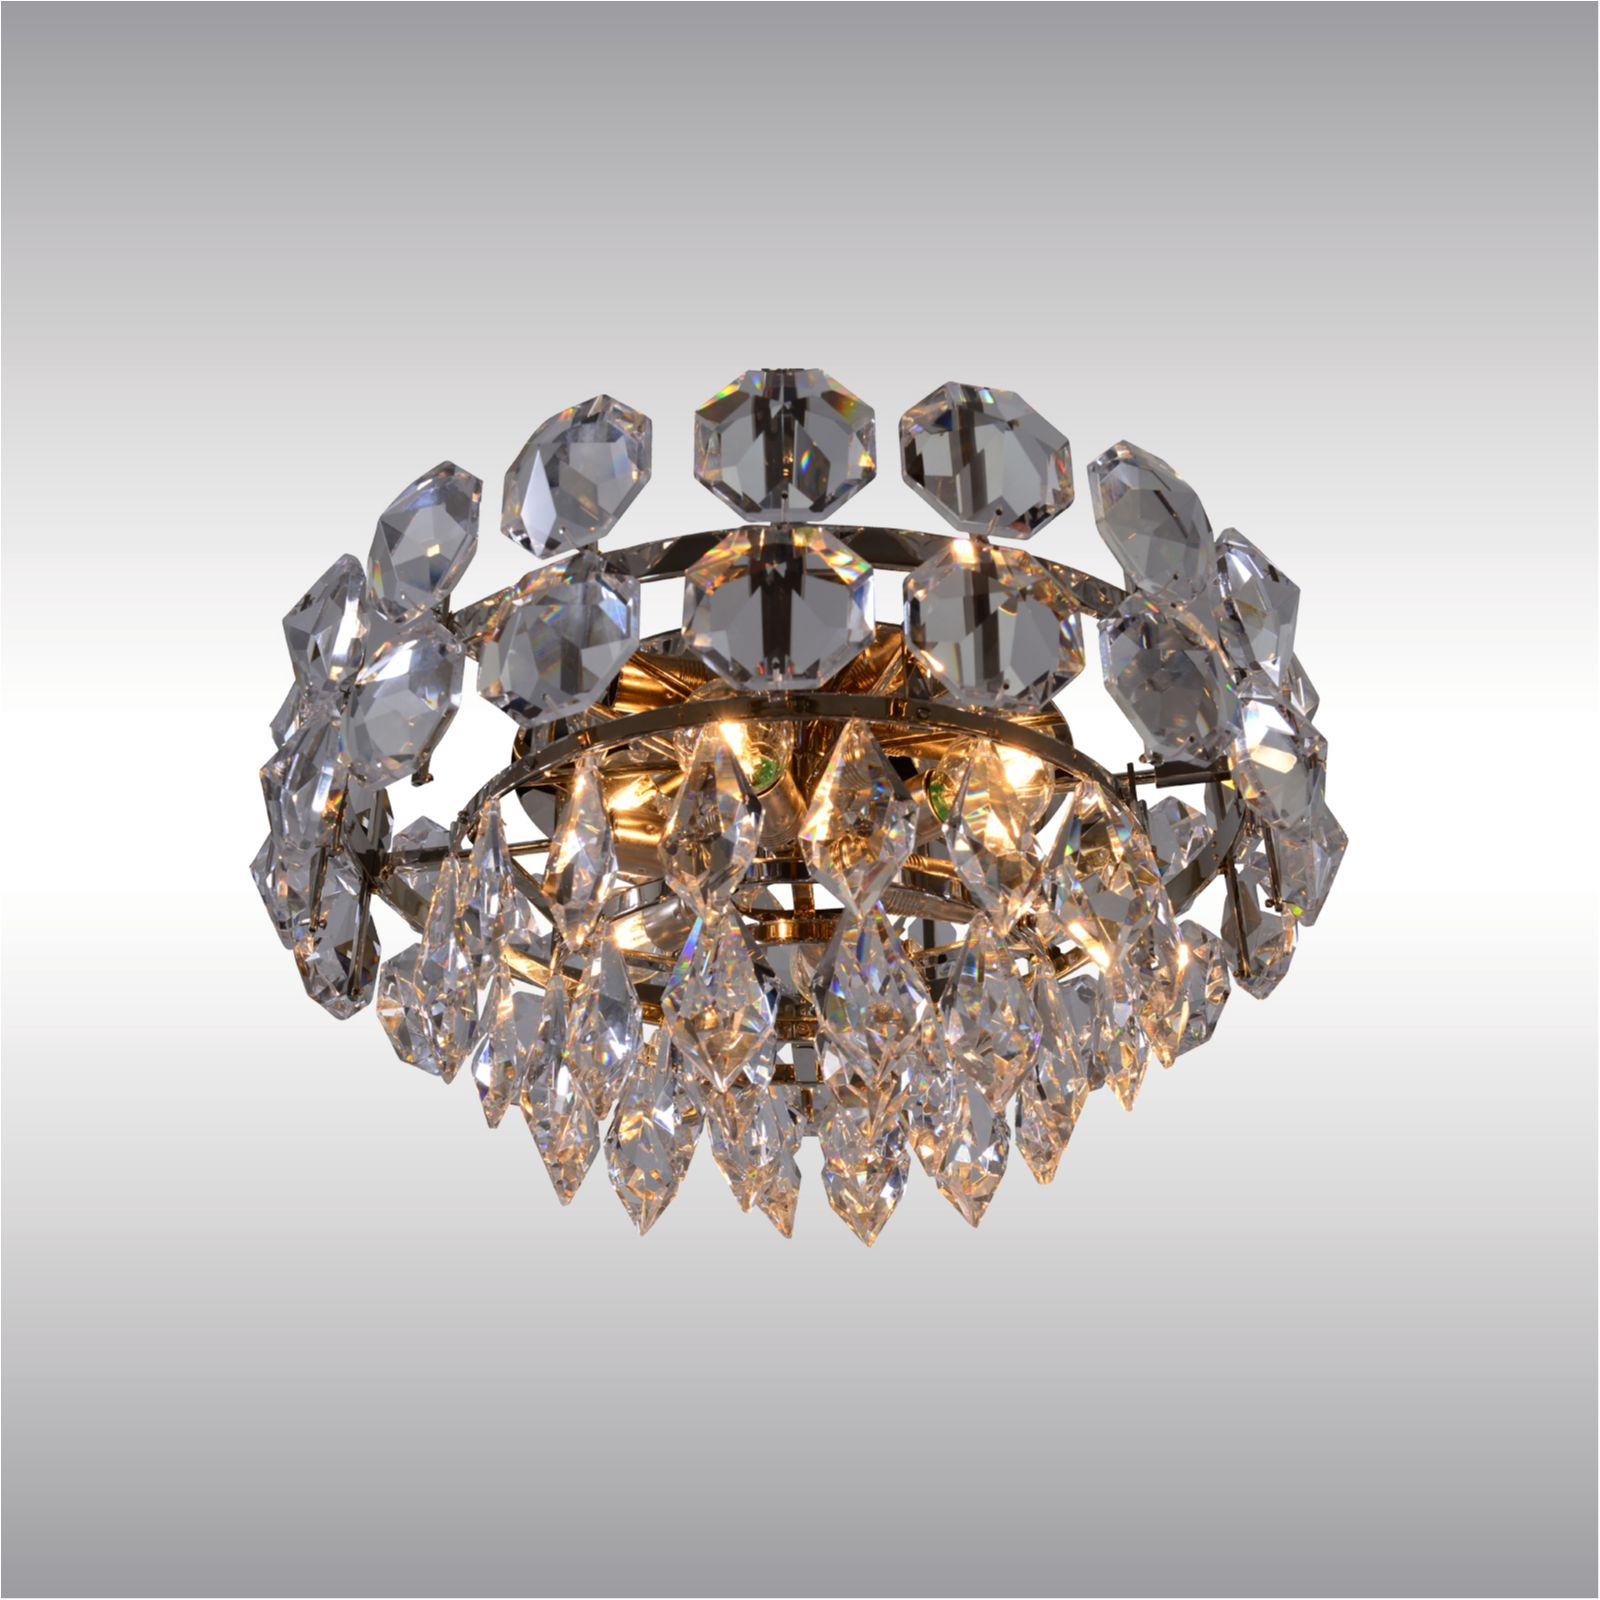 Image of: Mid Century Modern Crystal Glass Chandelier 1960